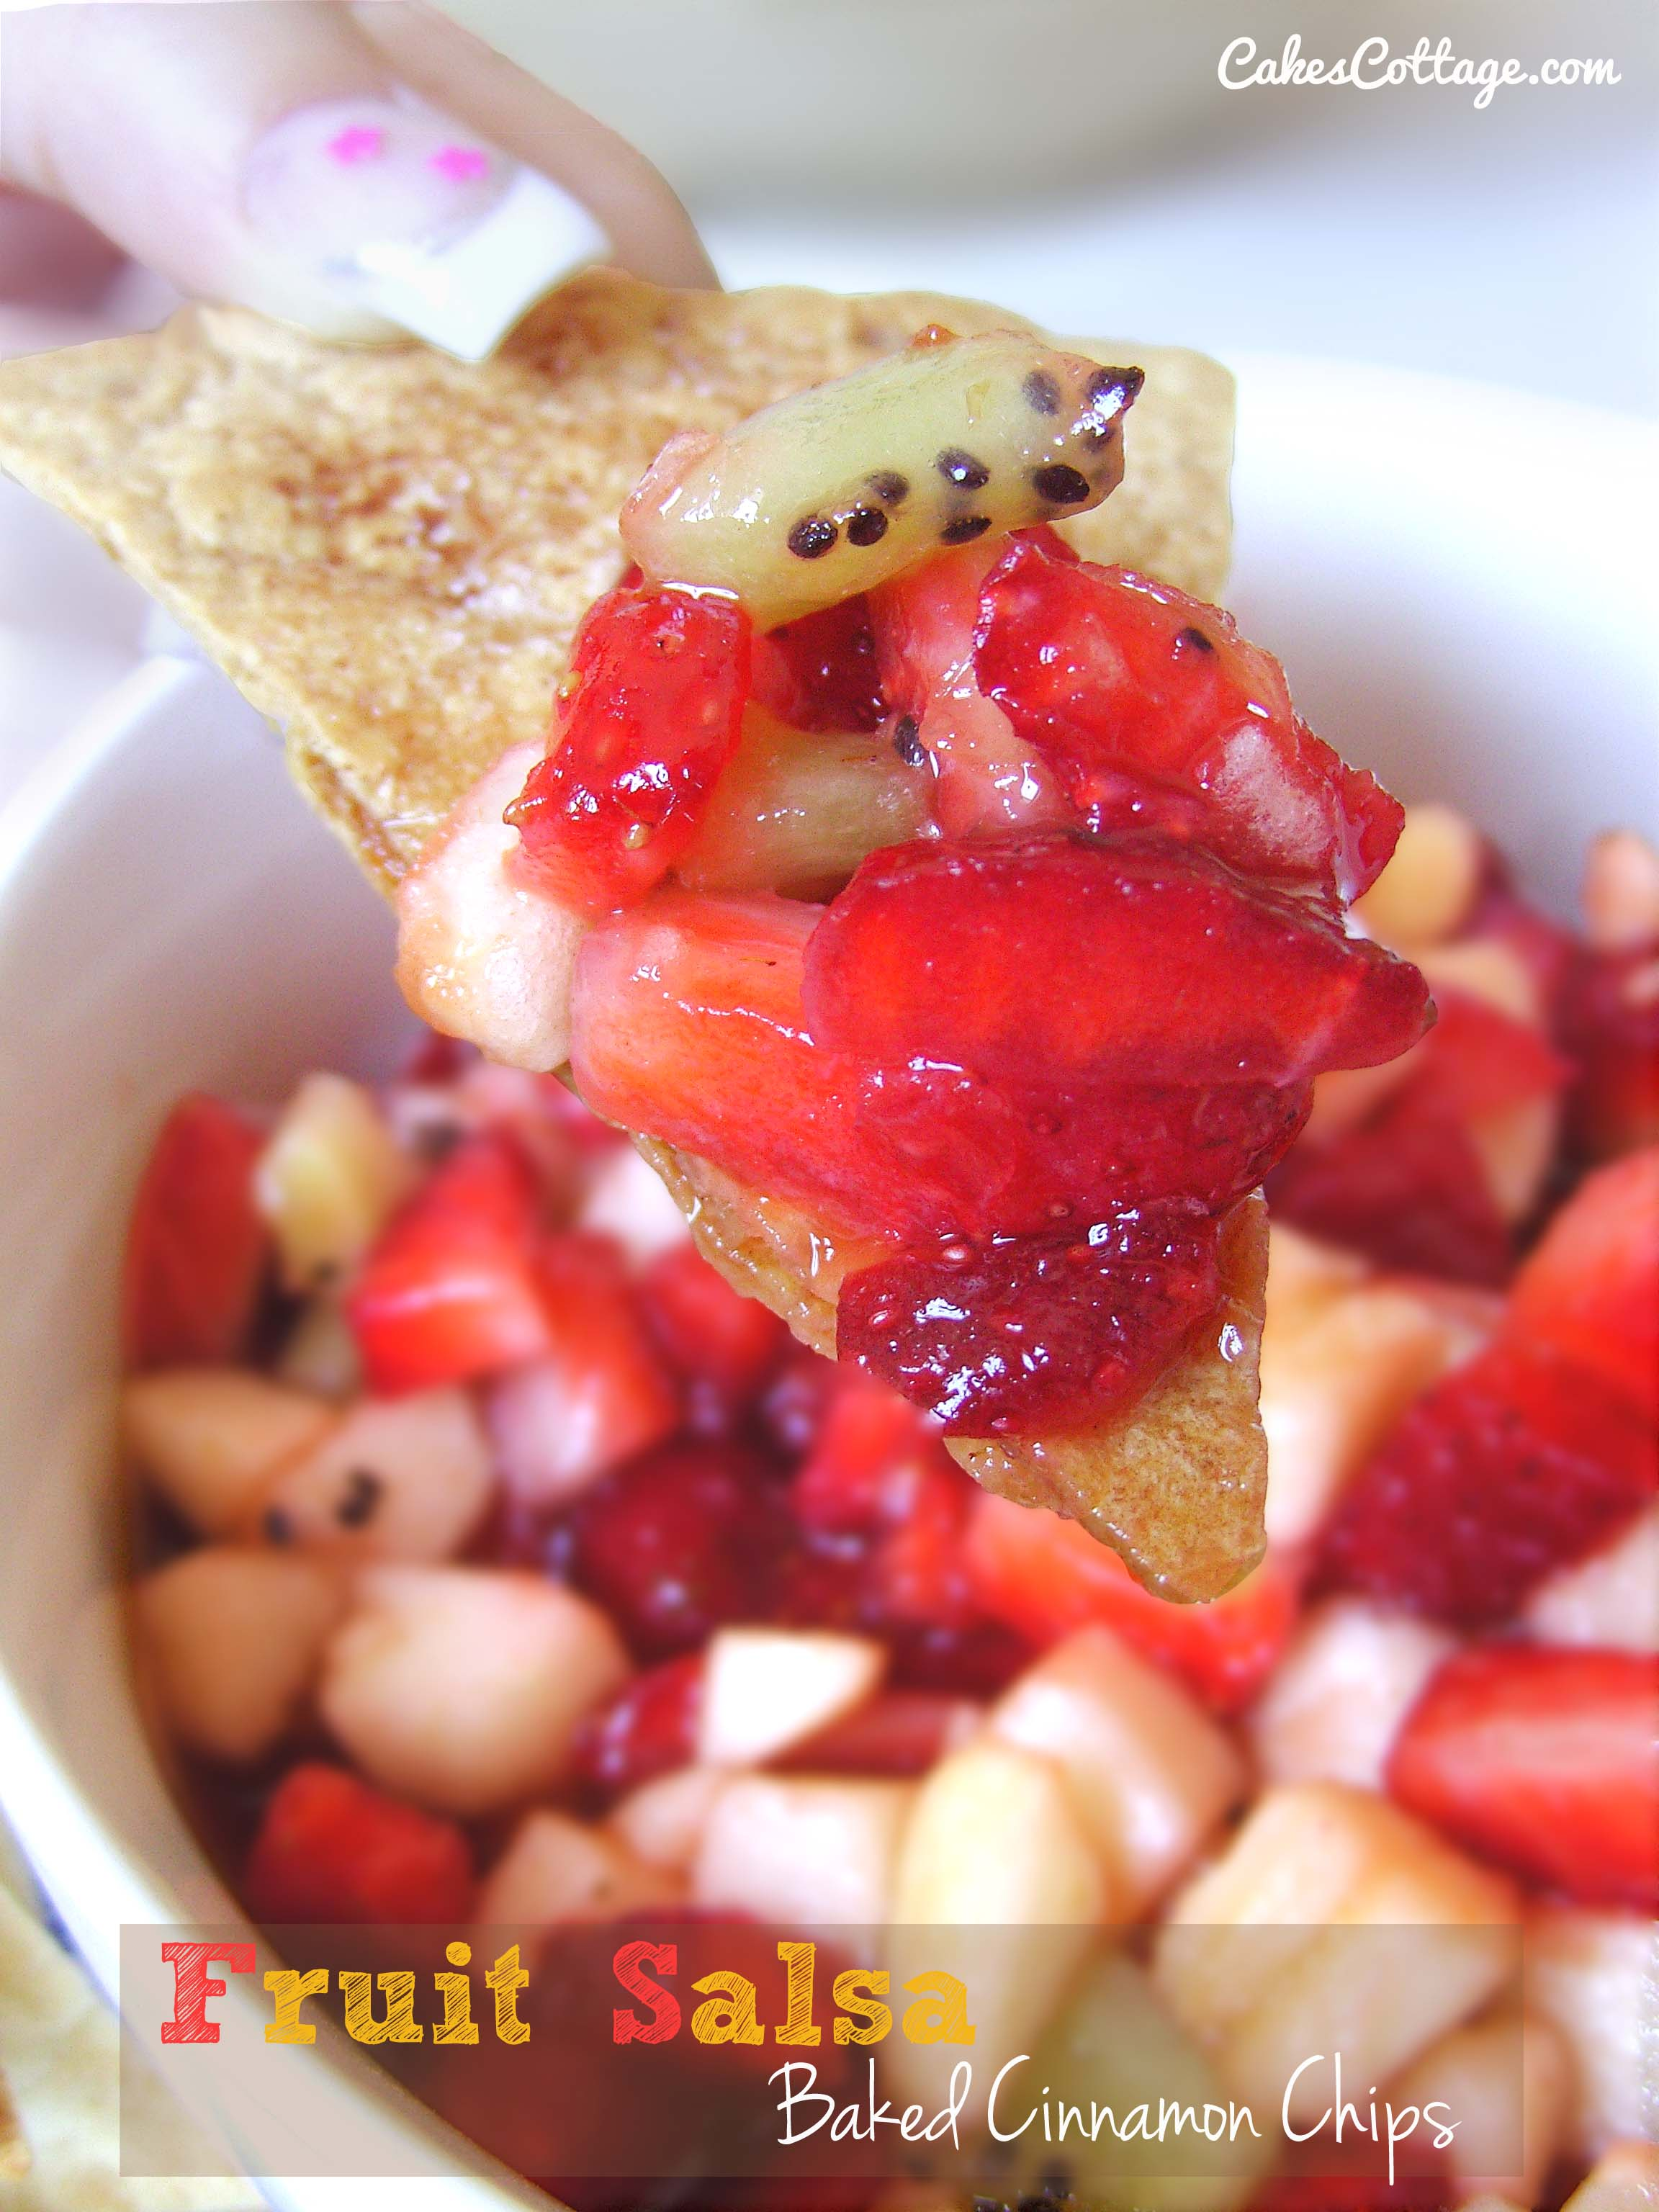 Fresh-Fruit-Salsa-with-Baked-Cinnamon-Chips